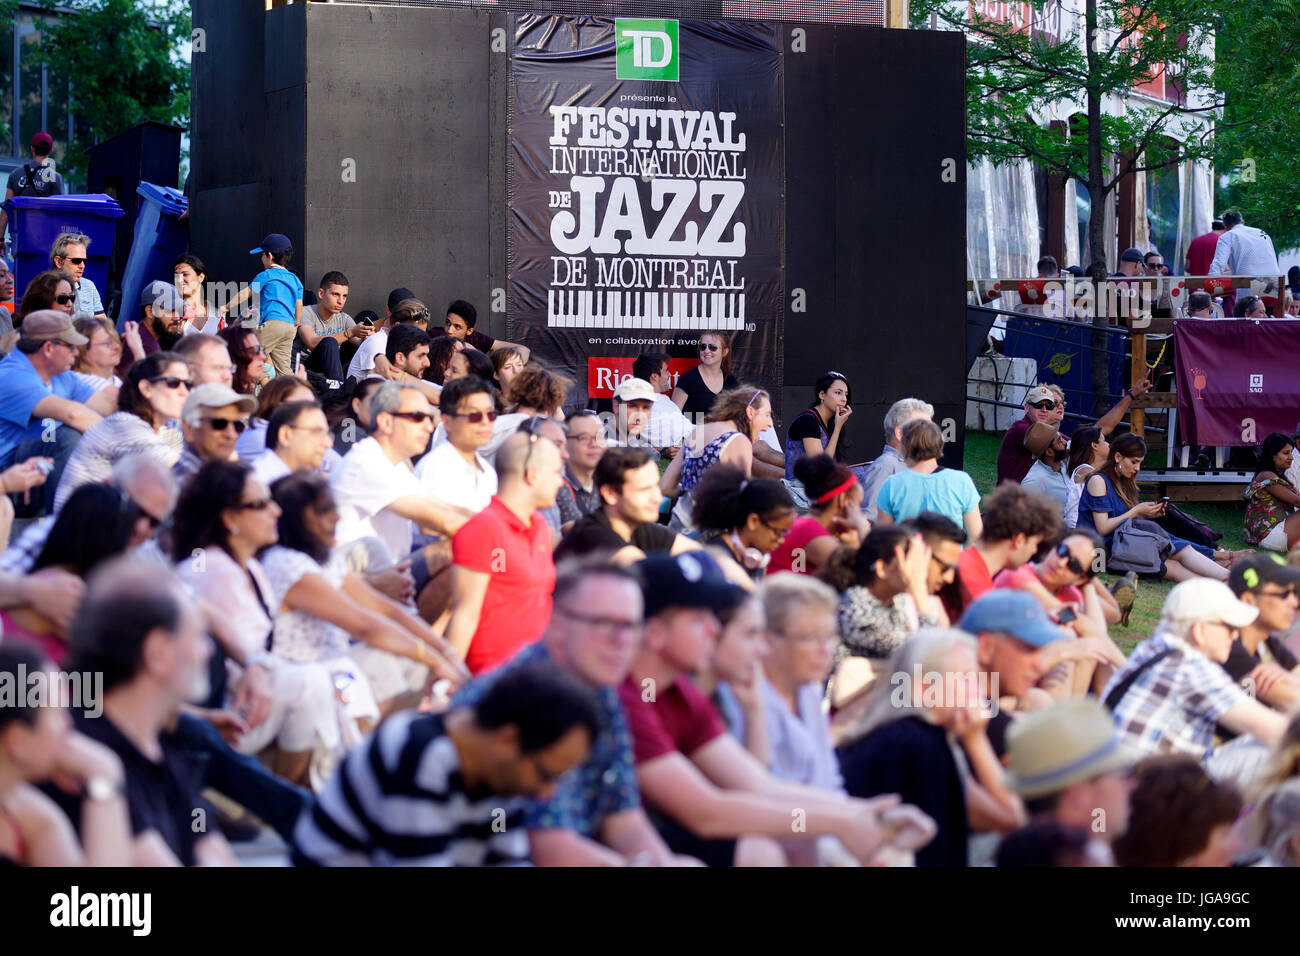 montreal place des festivals photos montreal place des festivals images alamy. Black Bedroom Furniture Sets. Home Design Ideas